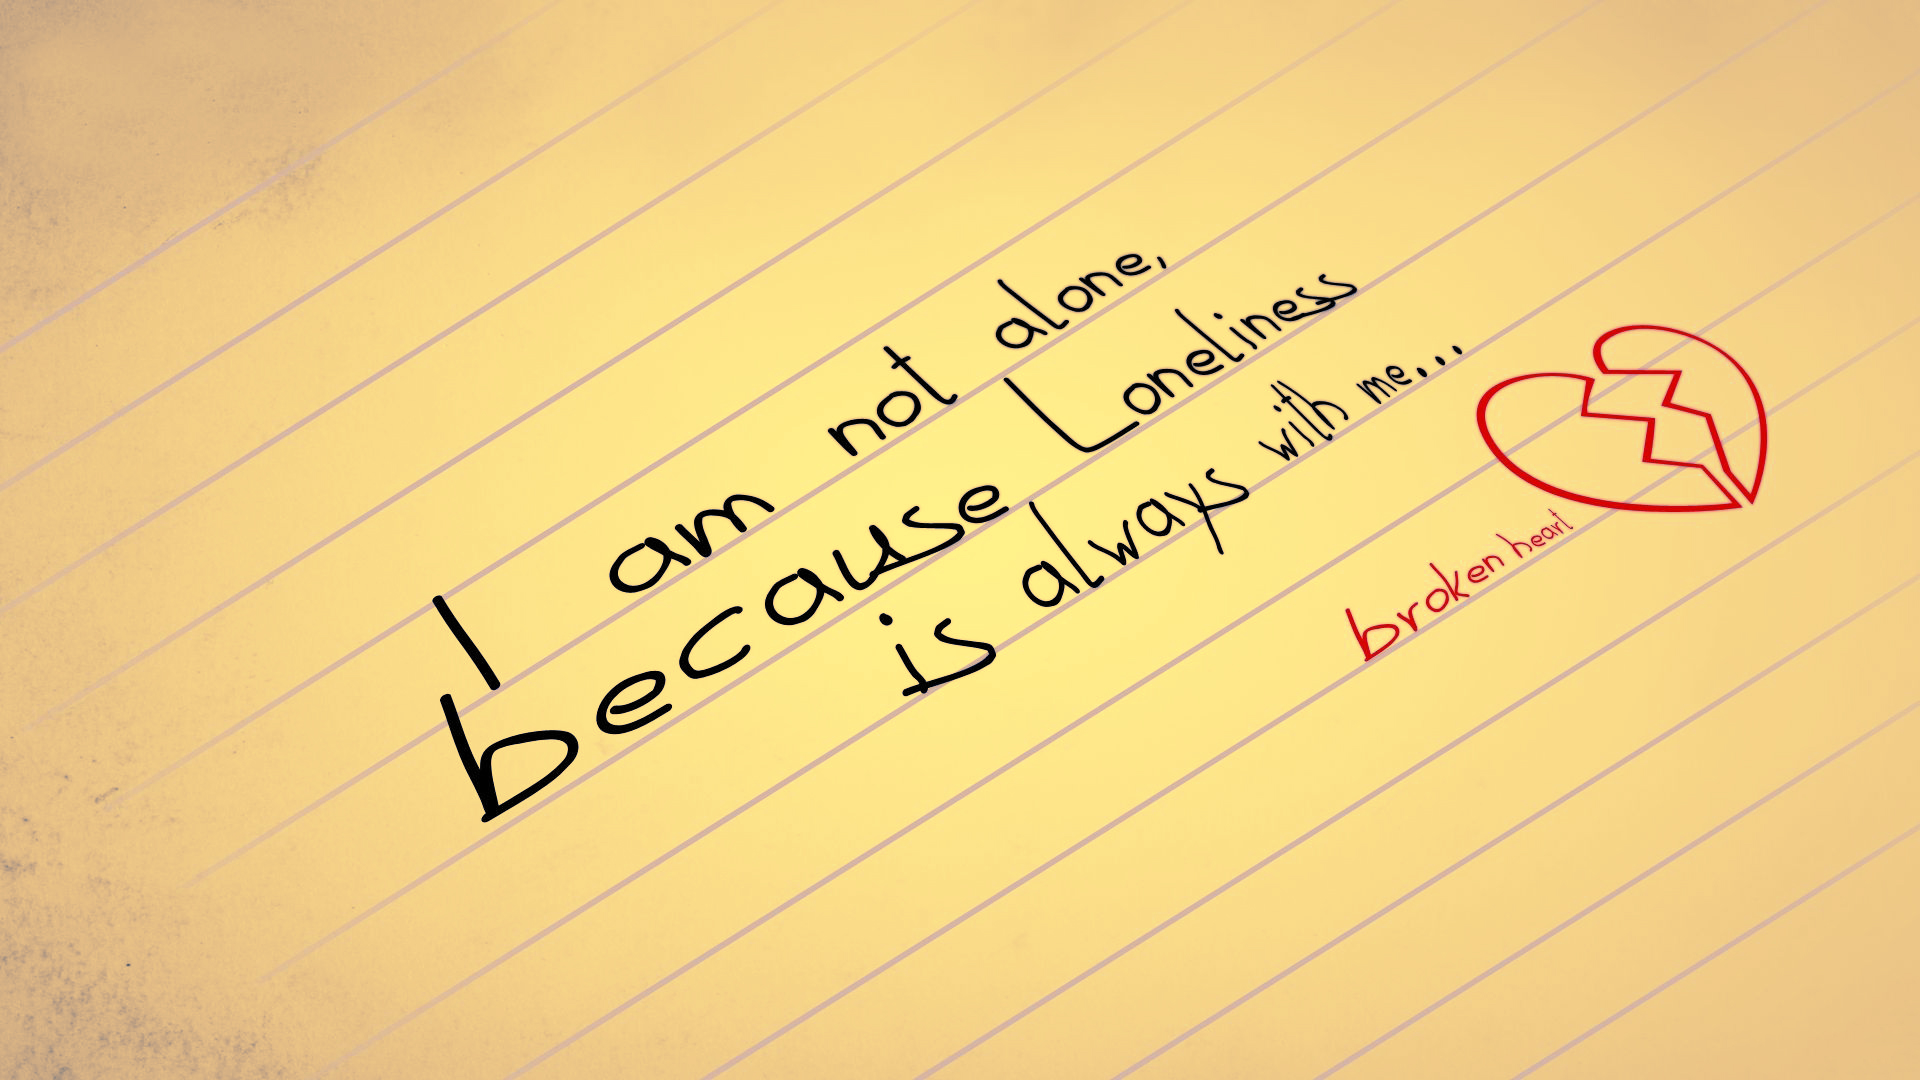 Loneliness is with me